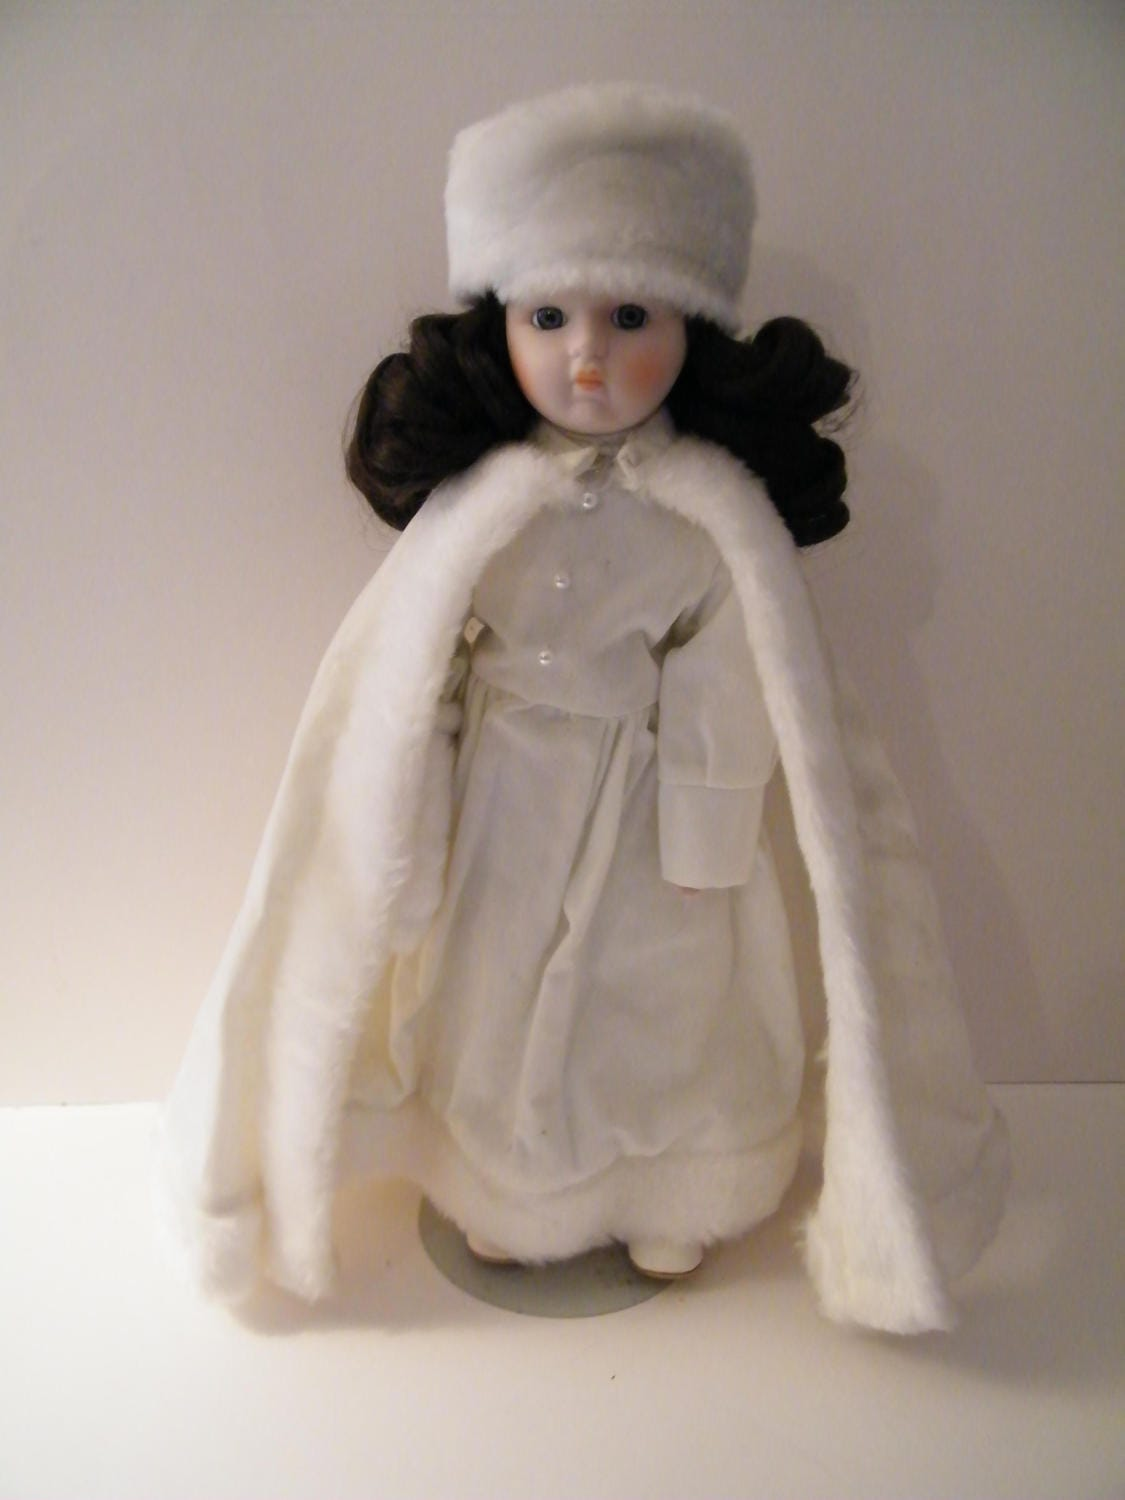 Used Doll From House Of Lloyd Porcelain Doll Vintage Winter